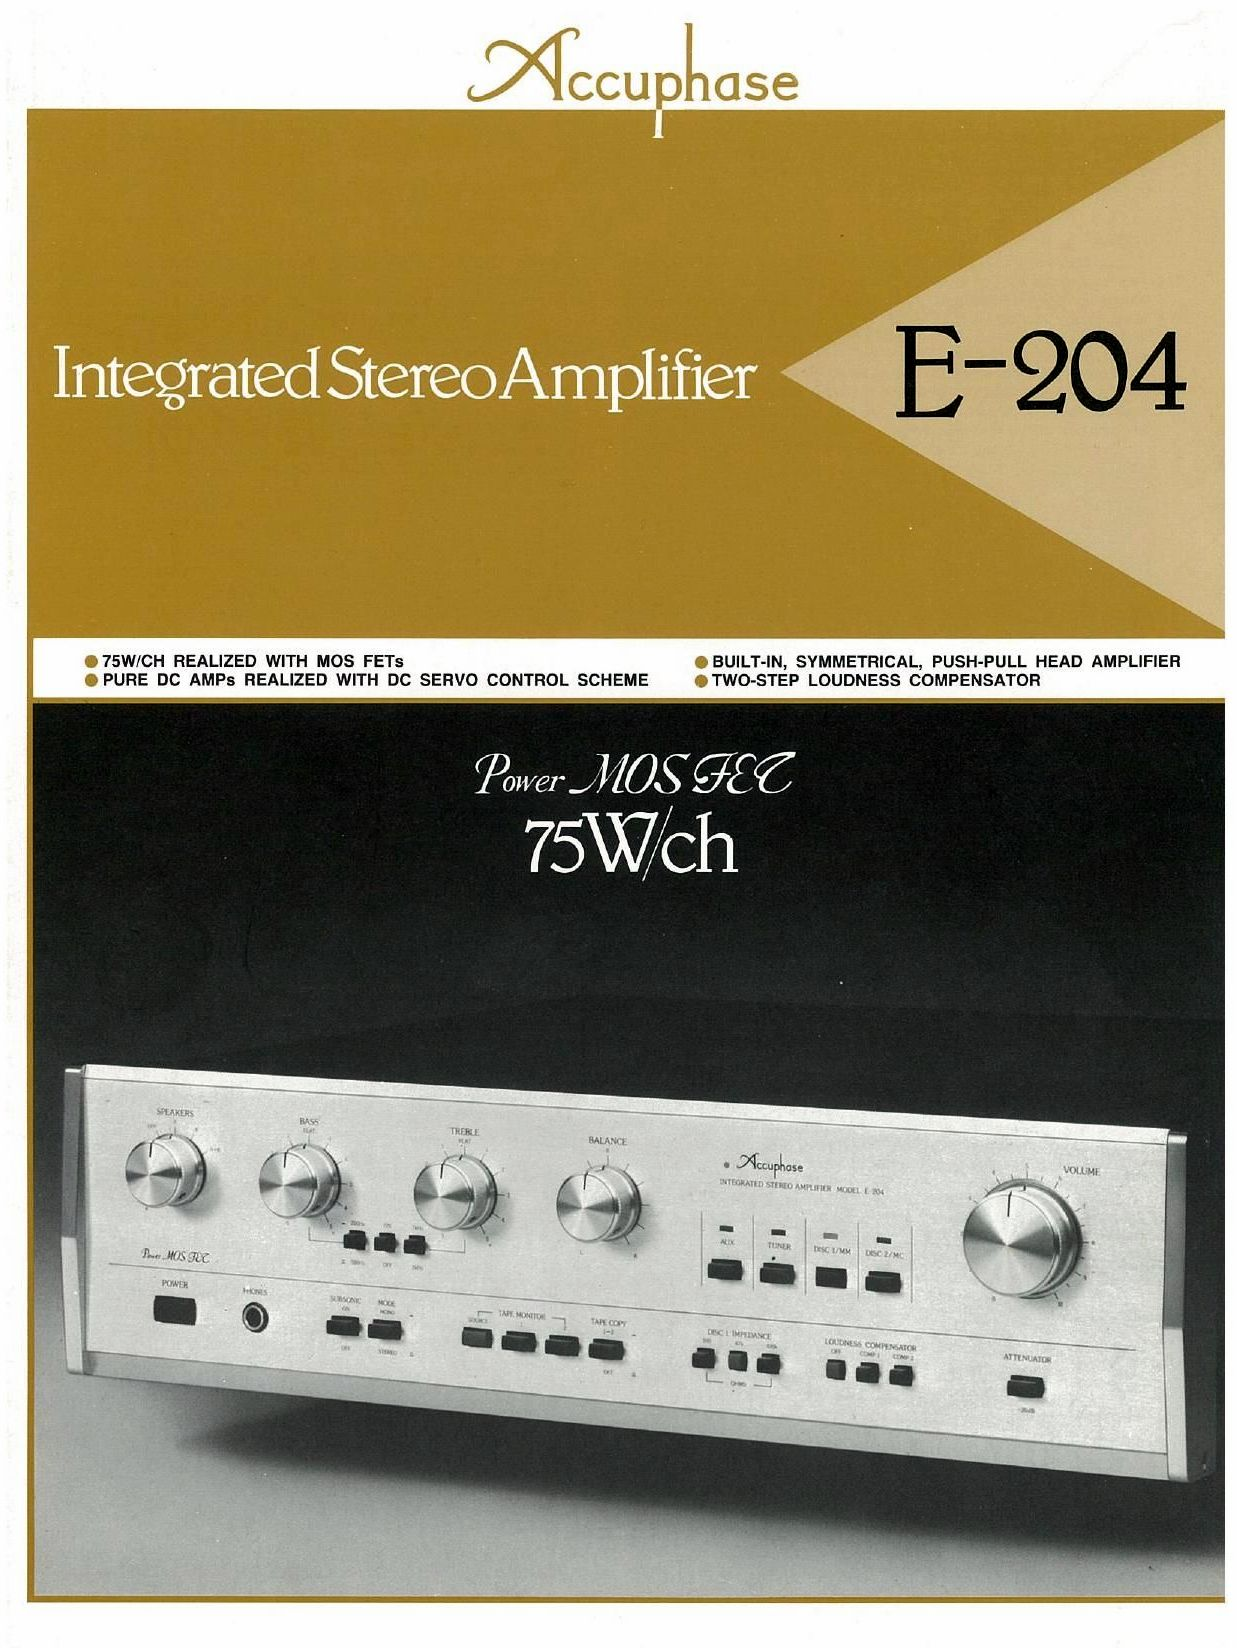 Accuphase E-204-Prospekt-2.jpg